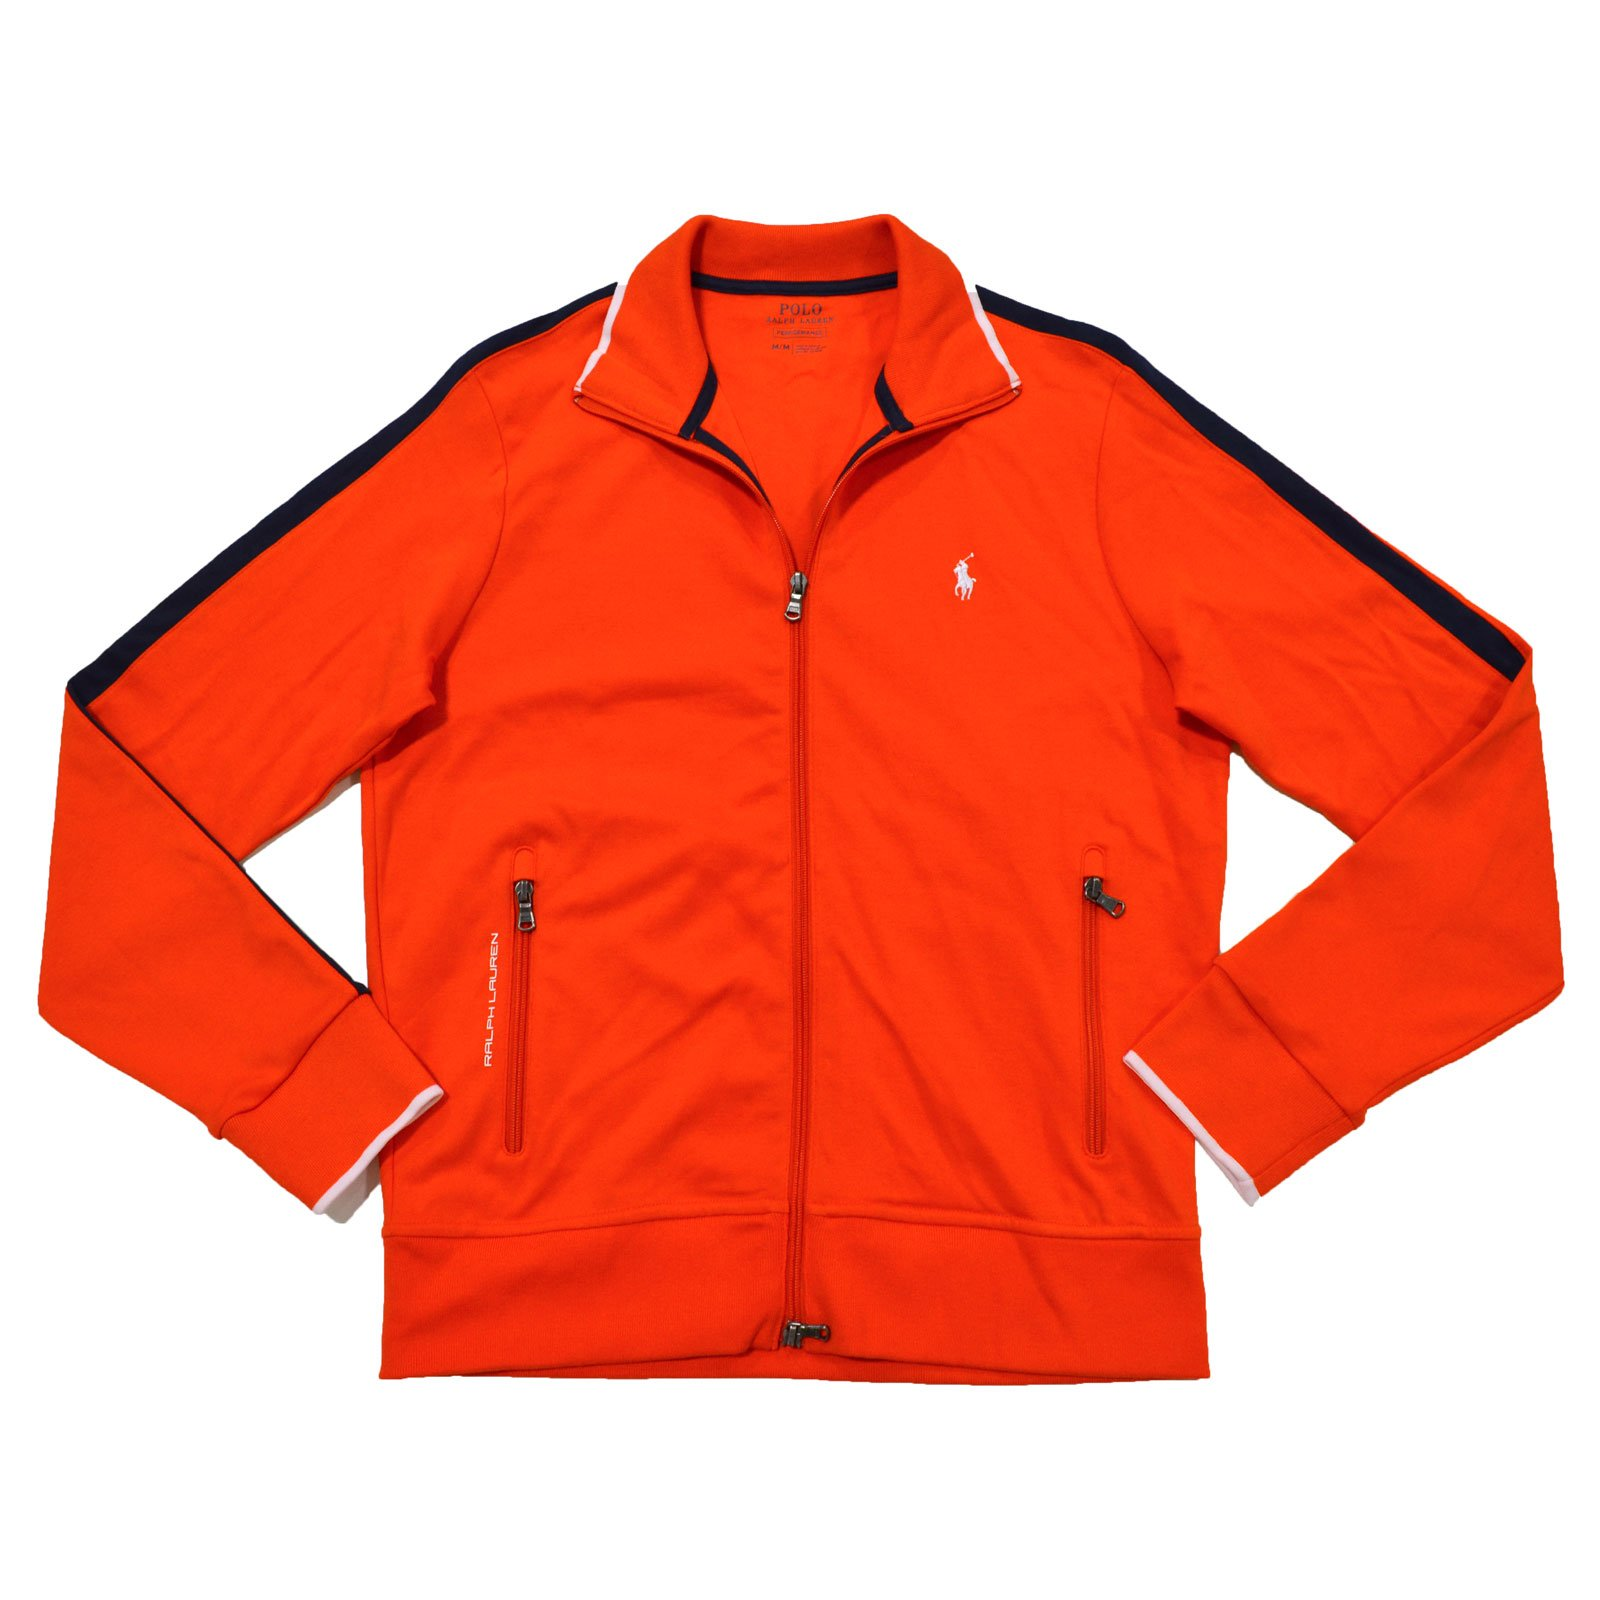 Polo Ralph Lauren Mens Full-Zip Athletic Performance Track Jacket (Orange, X-Large)